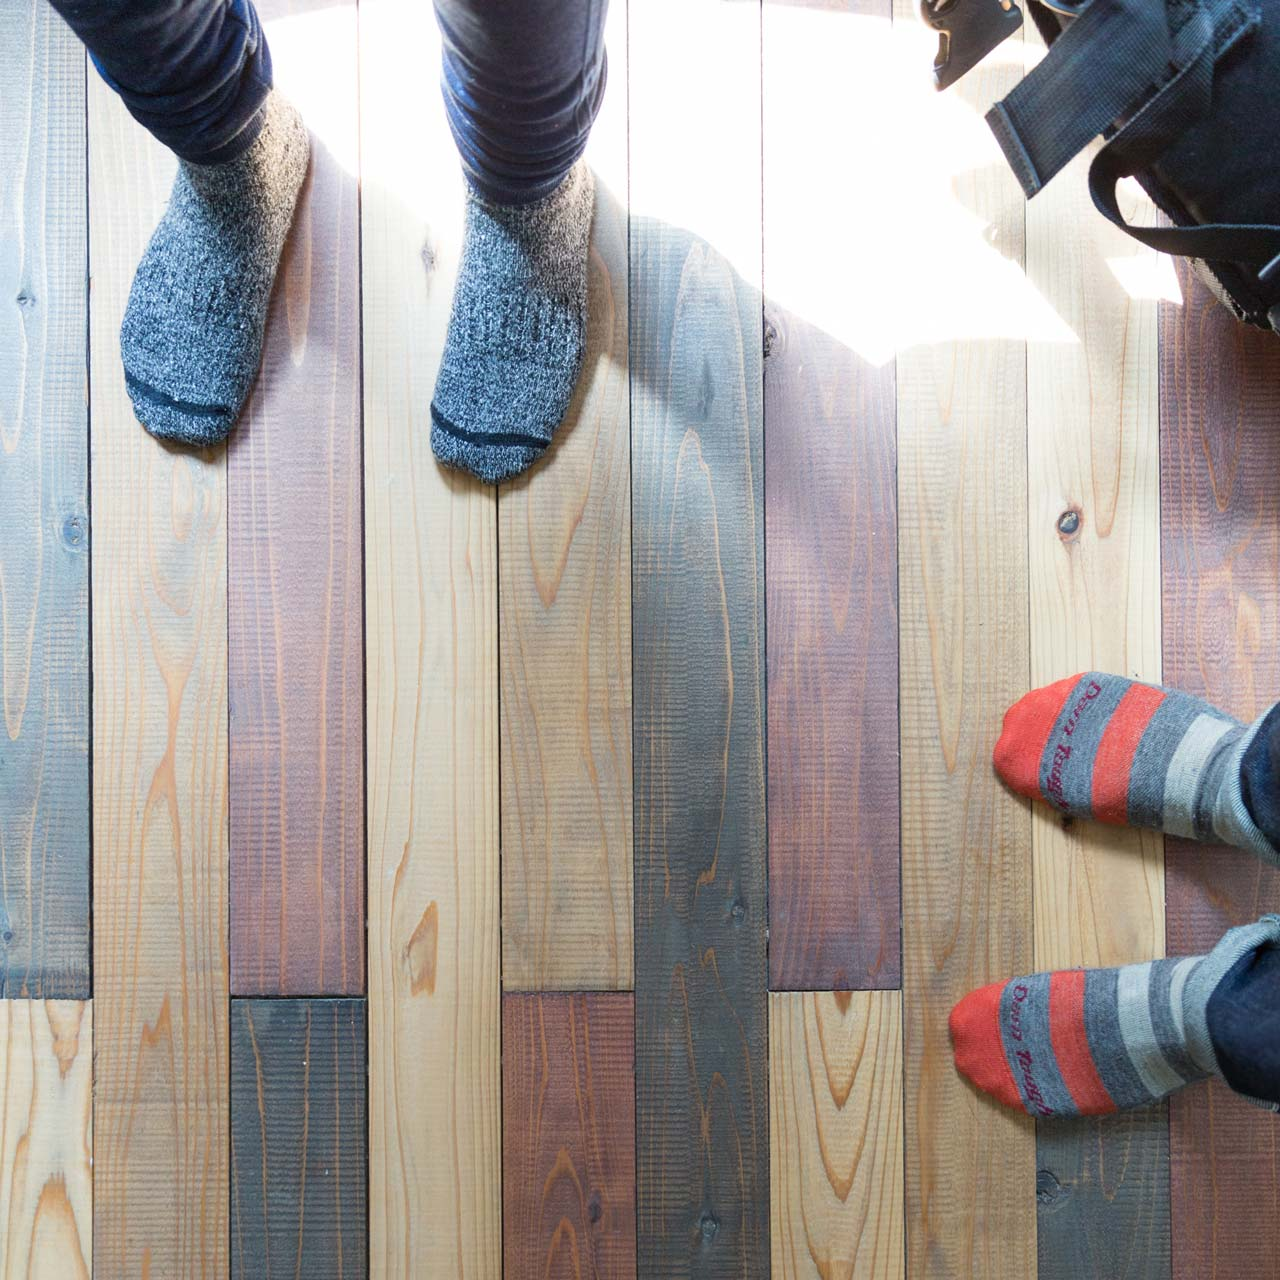 hardwood floors and feet in nakagin capsule tower